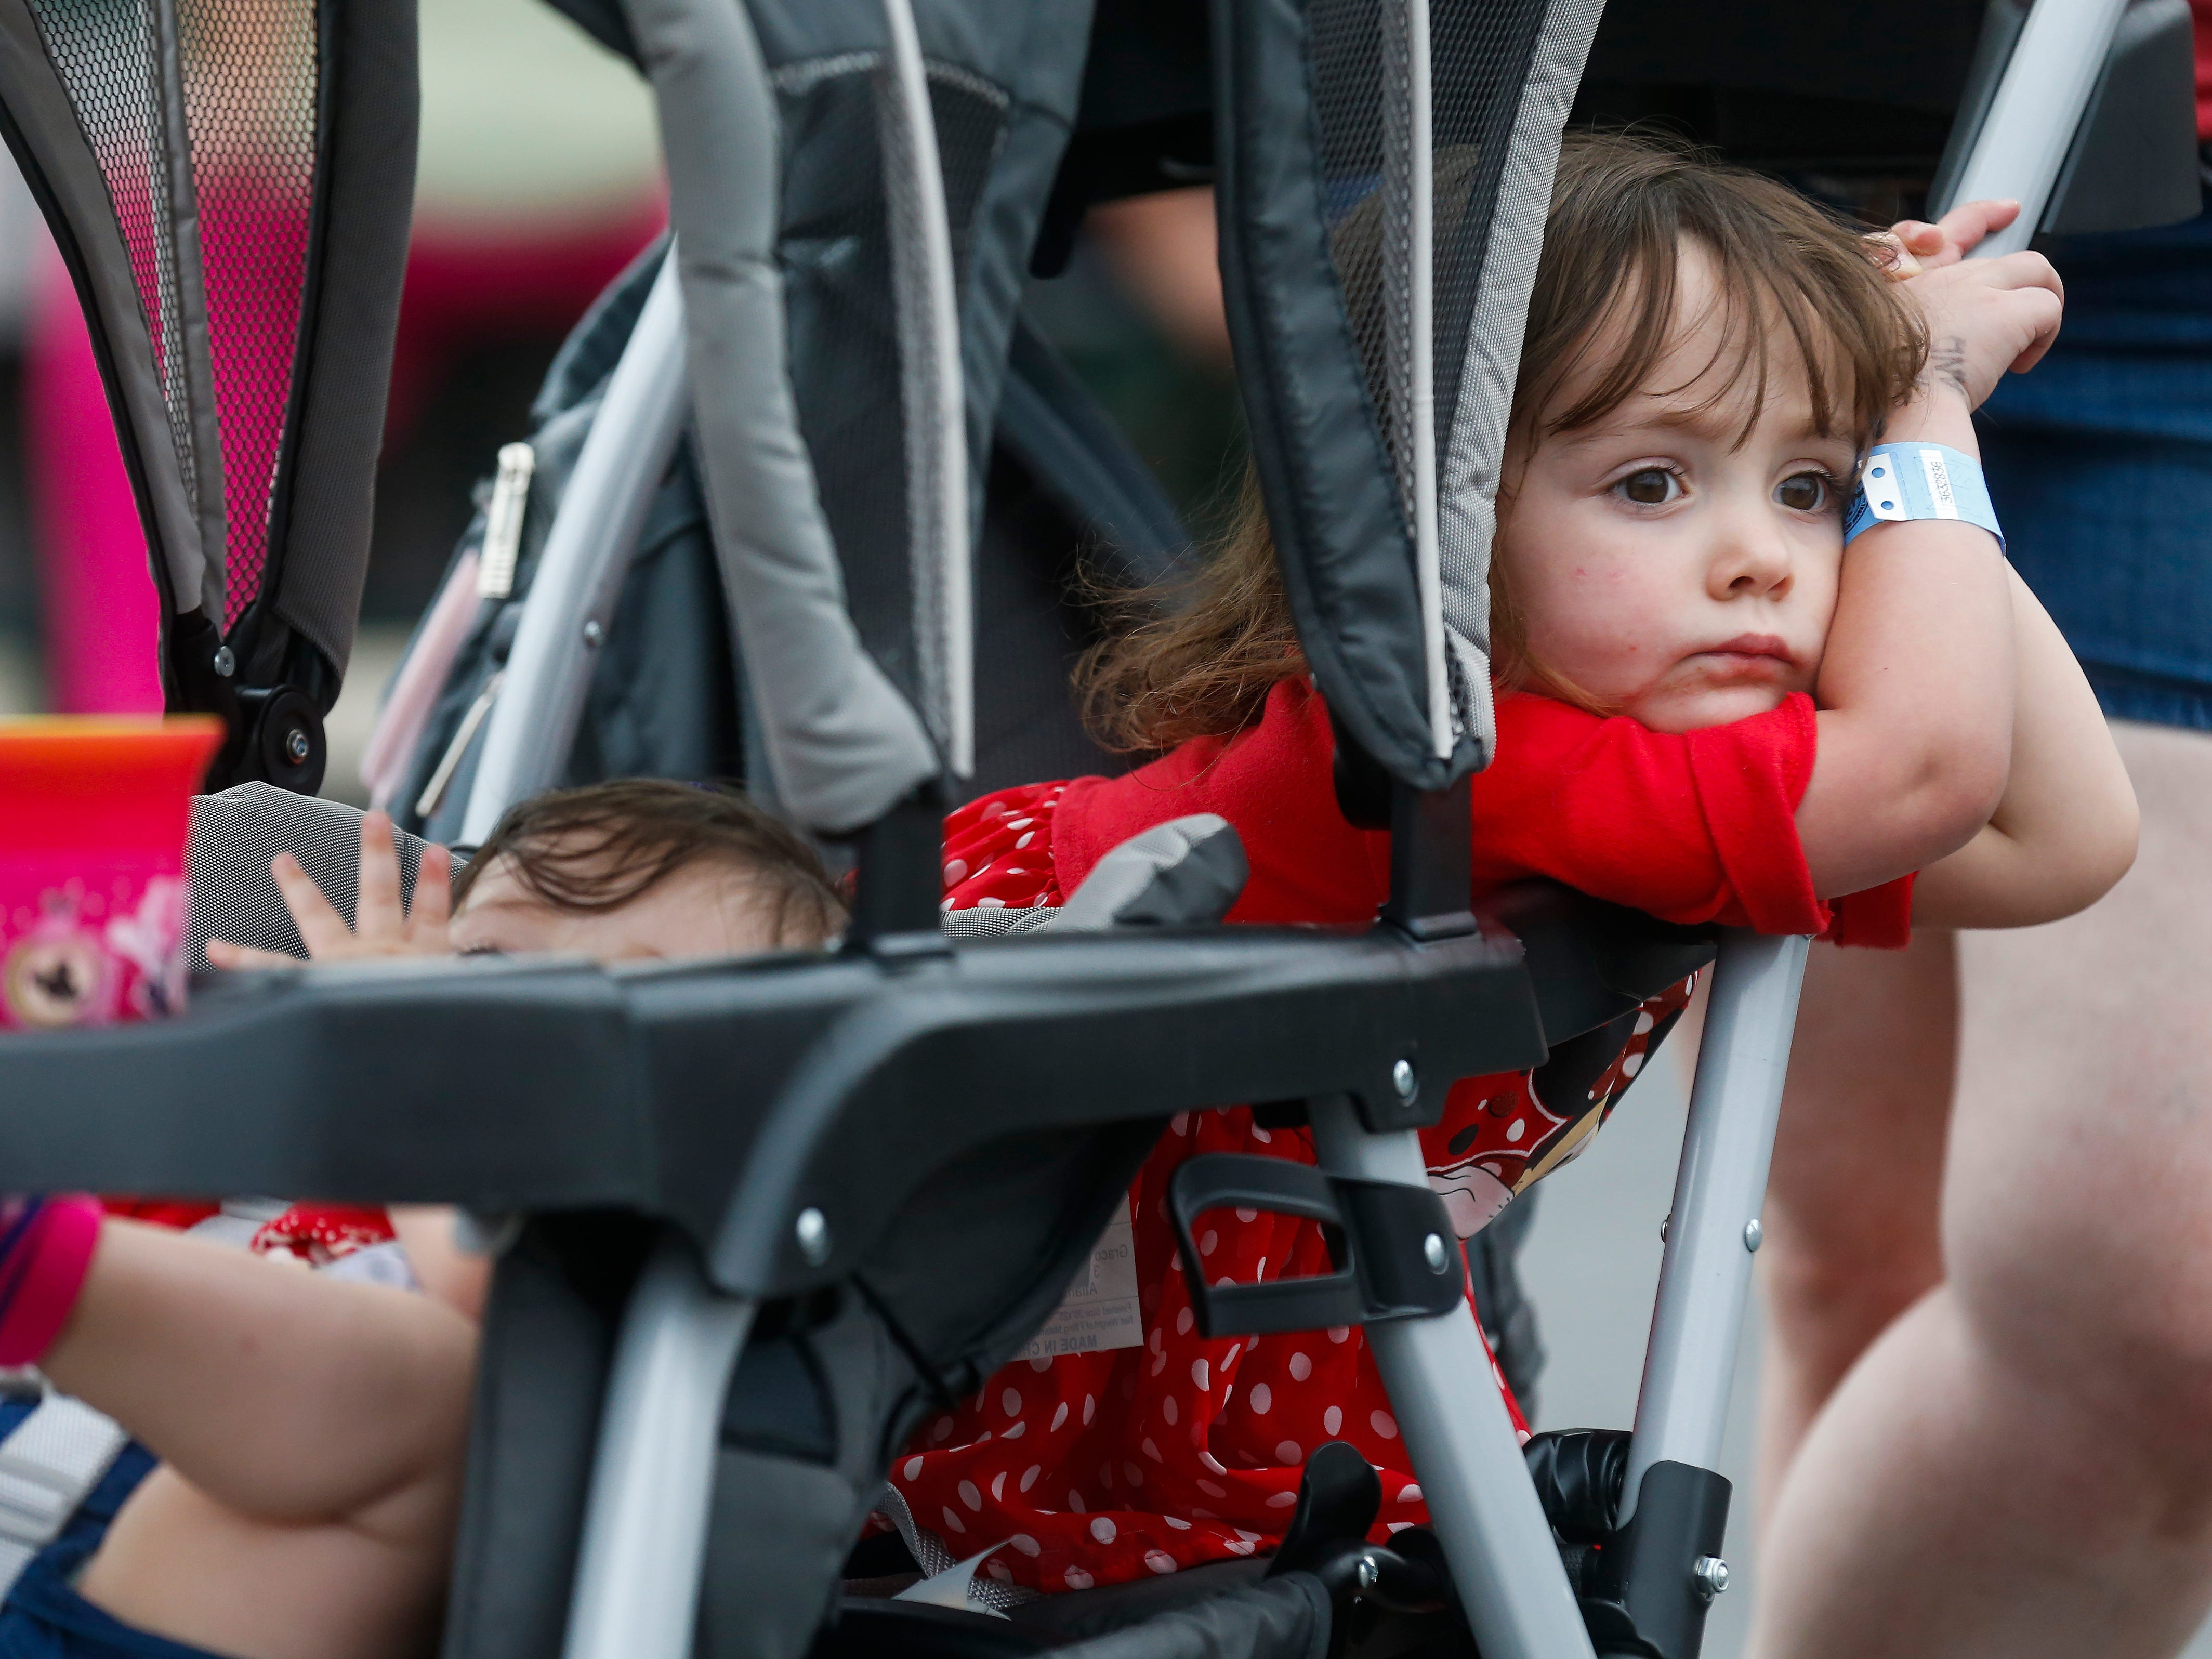 Izebella Gates, 2, of Springfield, looks out the side of her stroller while riding with her sister Annabeth Gates, 7 months, at the Ozark Empire Fair on Saturday, July 28, 2018.